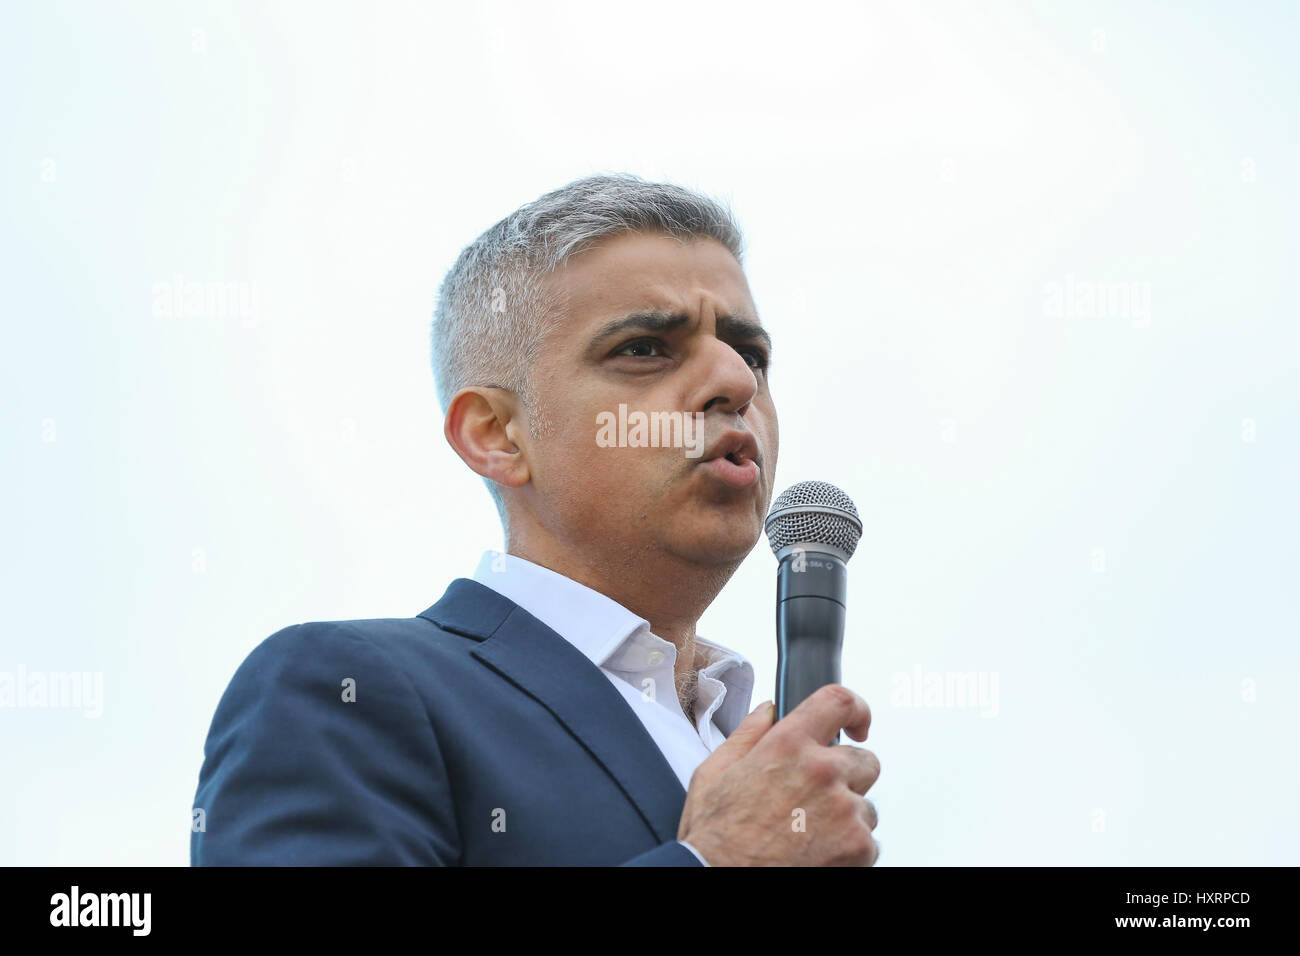 Mayor of London Sadiq Khan addressing the hundreds of people attending the screening of 'The Salesman' in - Stock Image